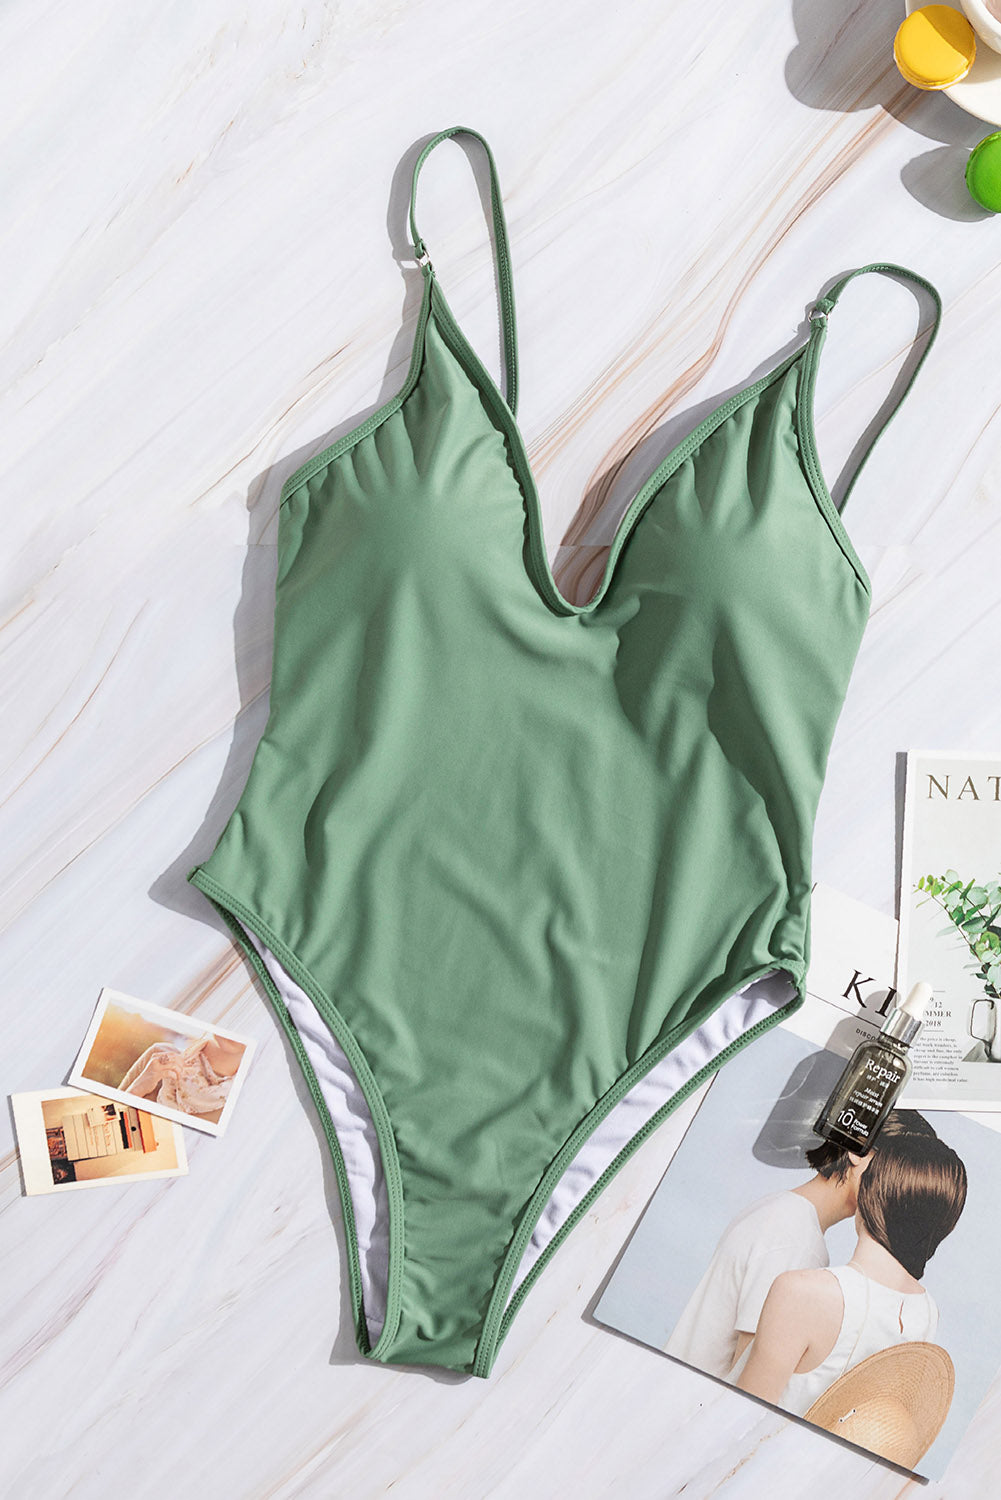 Green V Neck One Piece Swimsuit One-Piece Swimwear Discount Designer Fashion Clothes Shoes Bags Women Men Kids Children Black Owned Business